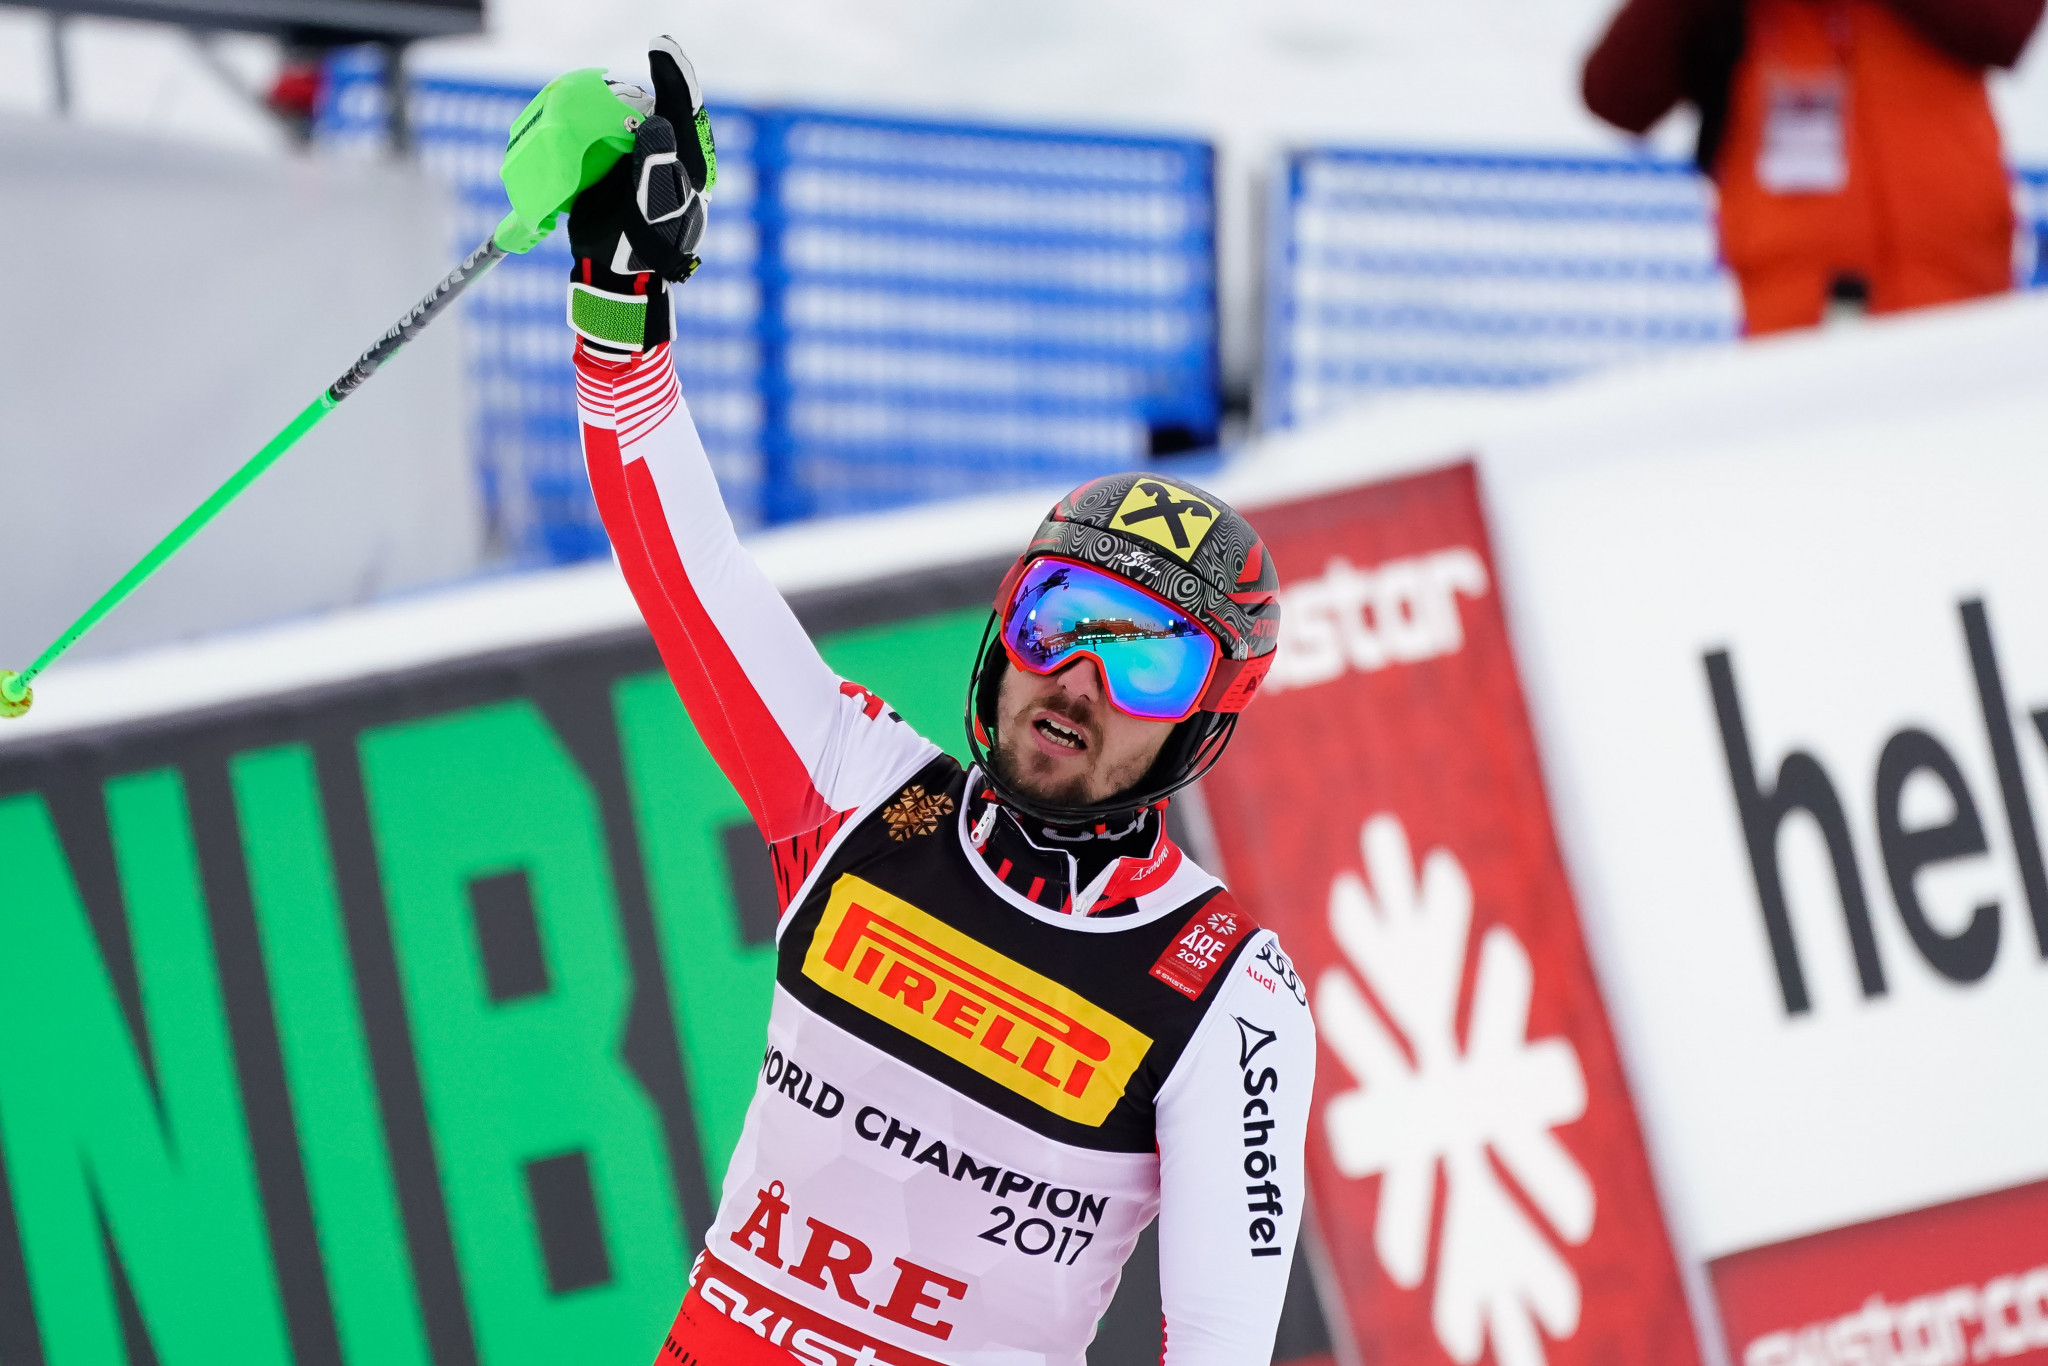 Defending champion Marcel Hirscher produced a superb opening run to take a commanding lead ©Getty Images